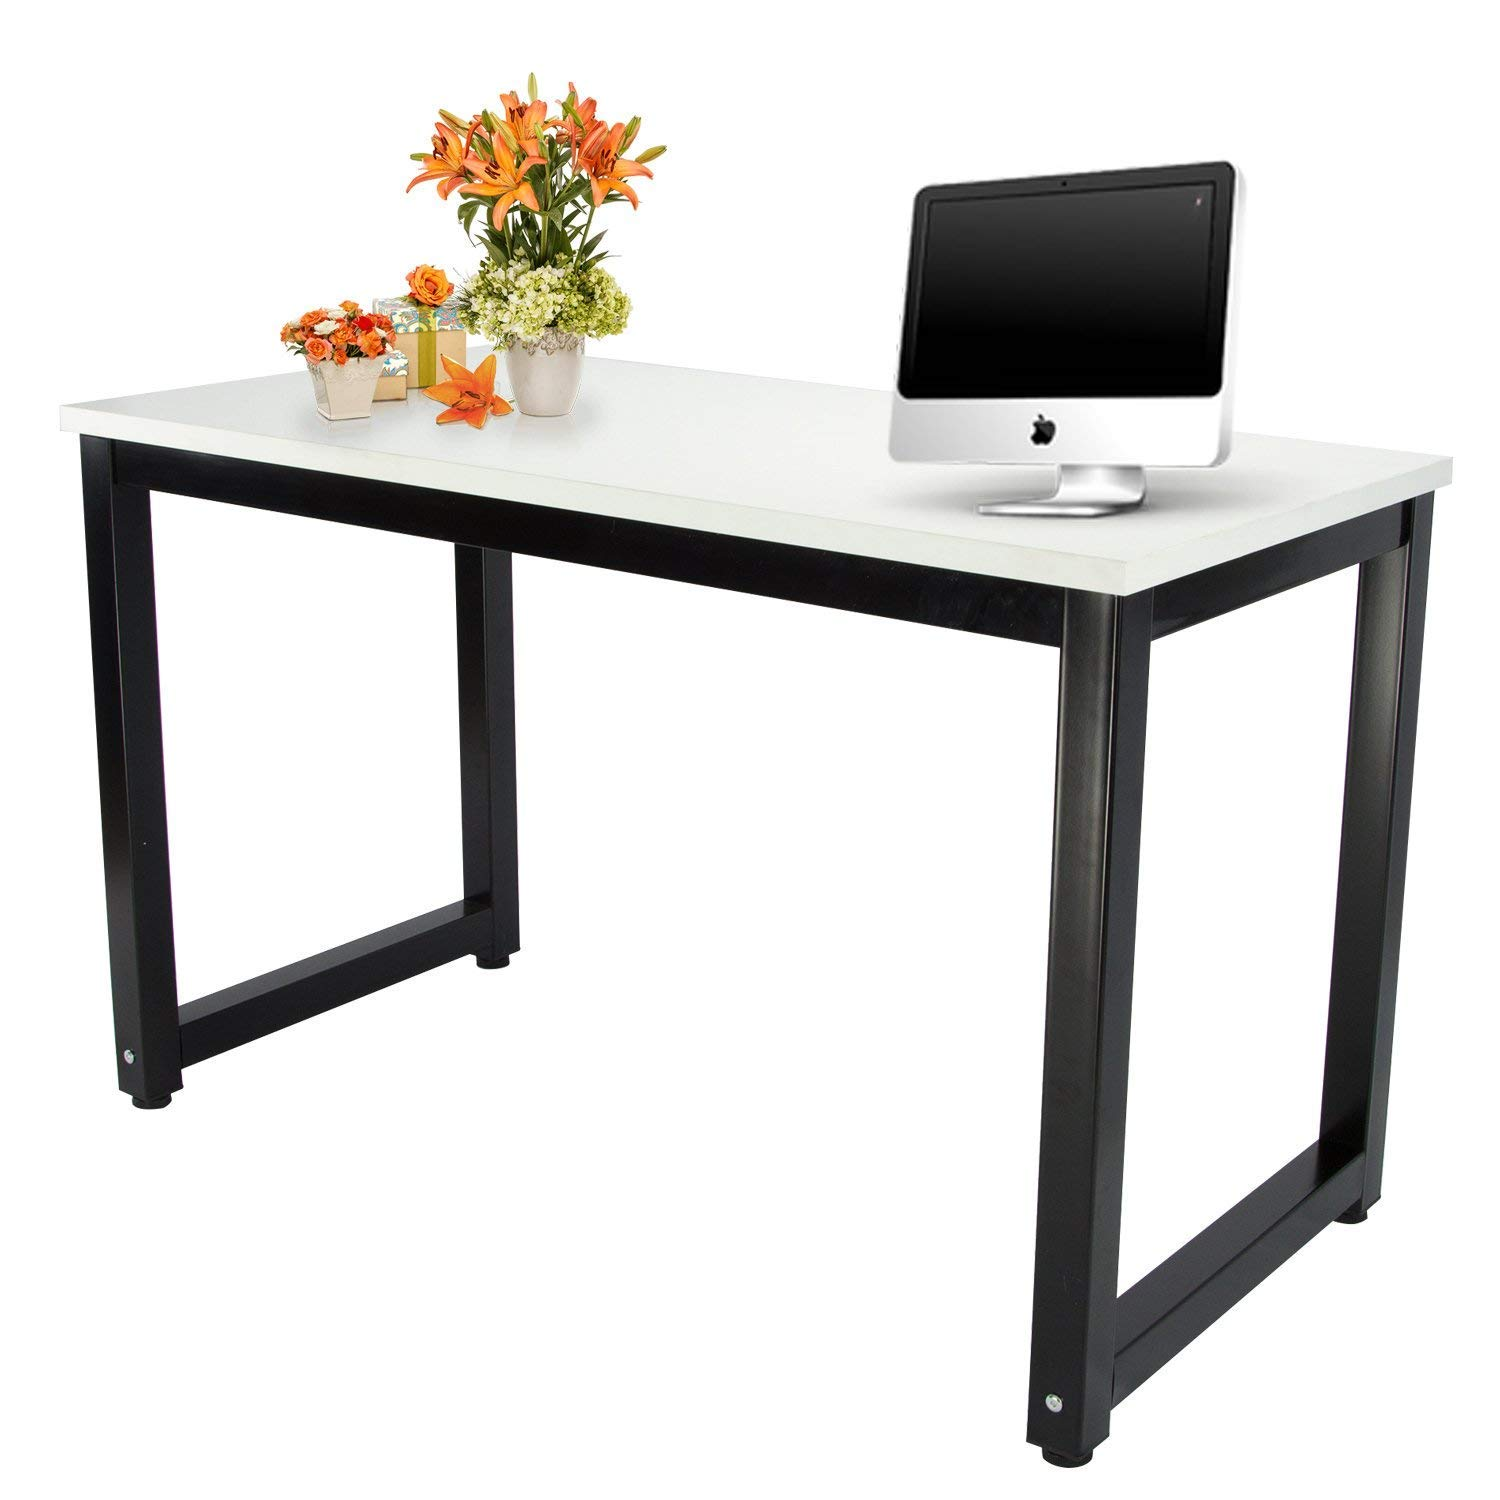 Computer Office Desk Easy Assembly Modern Simple Style Dining Table Study Writing Desk for Home and Professional Use (Metal Ivory White Black Legs)